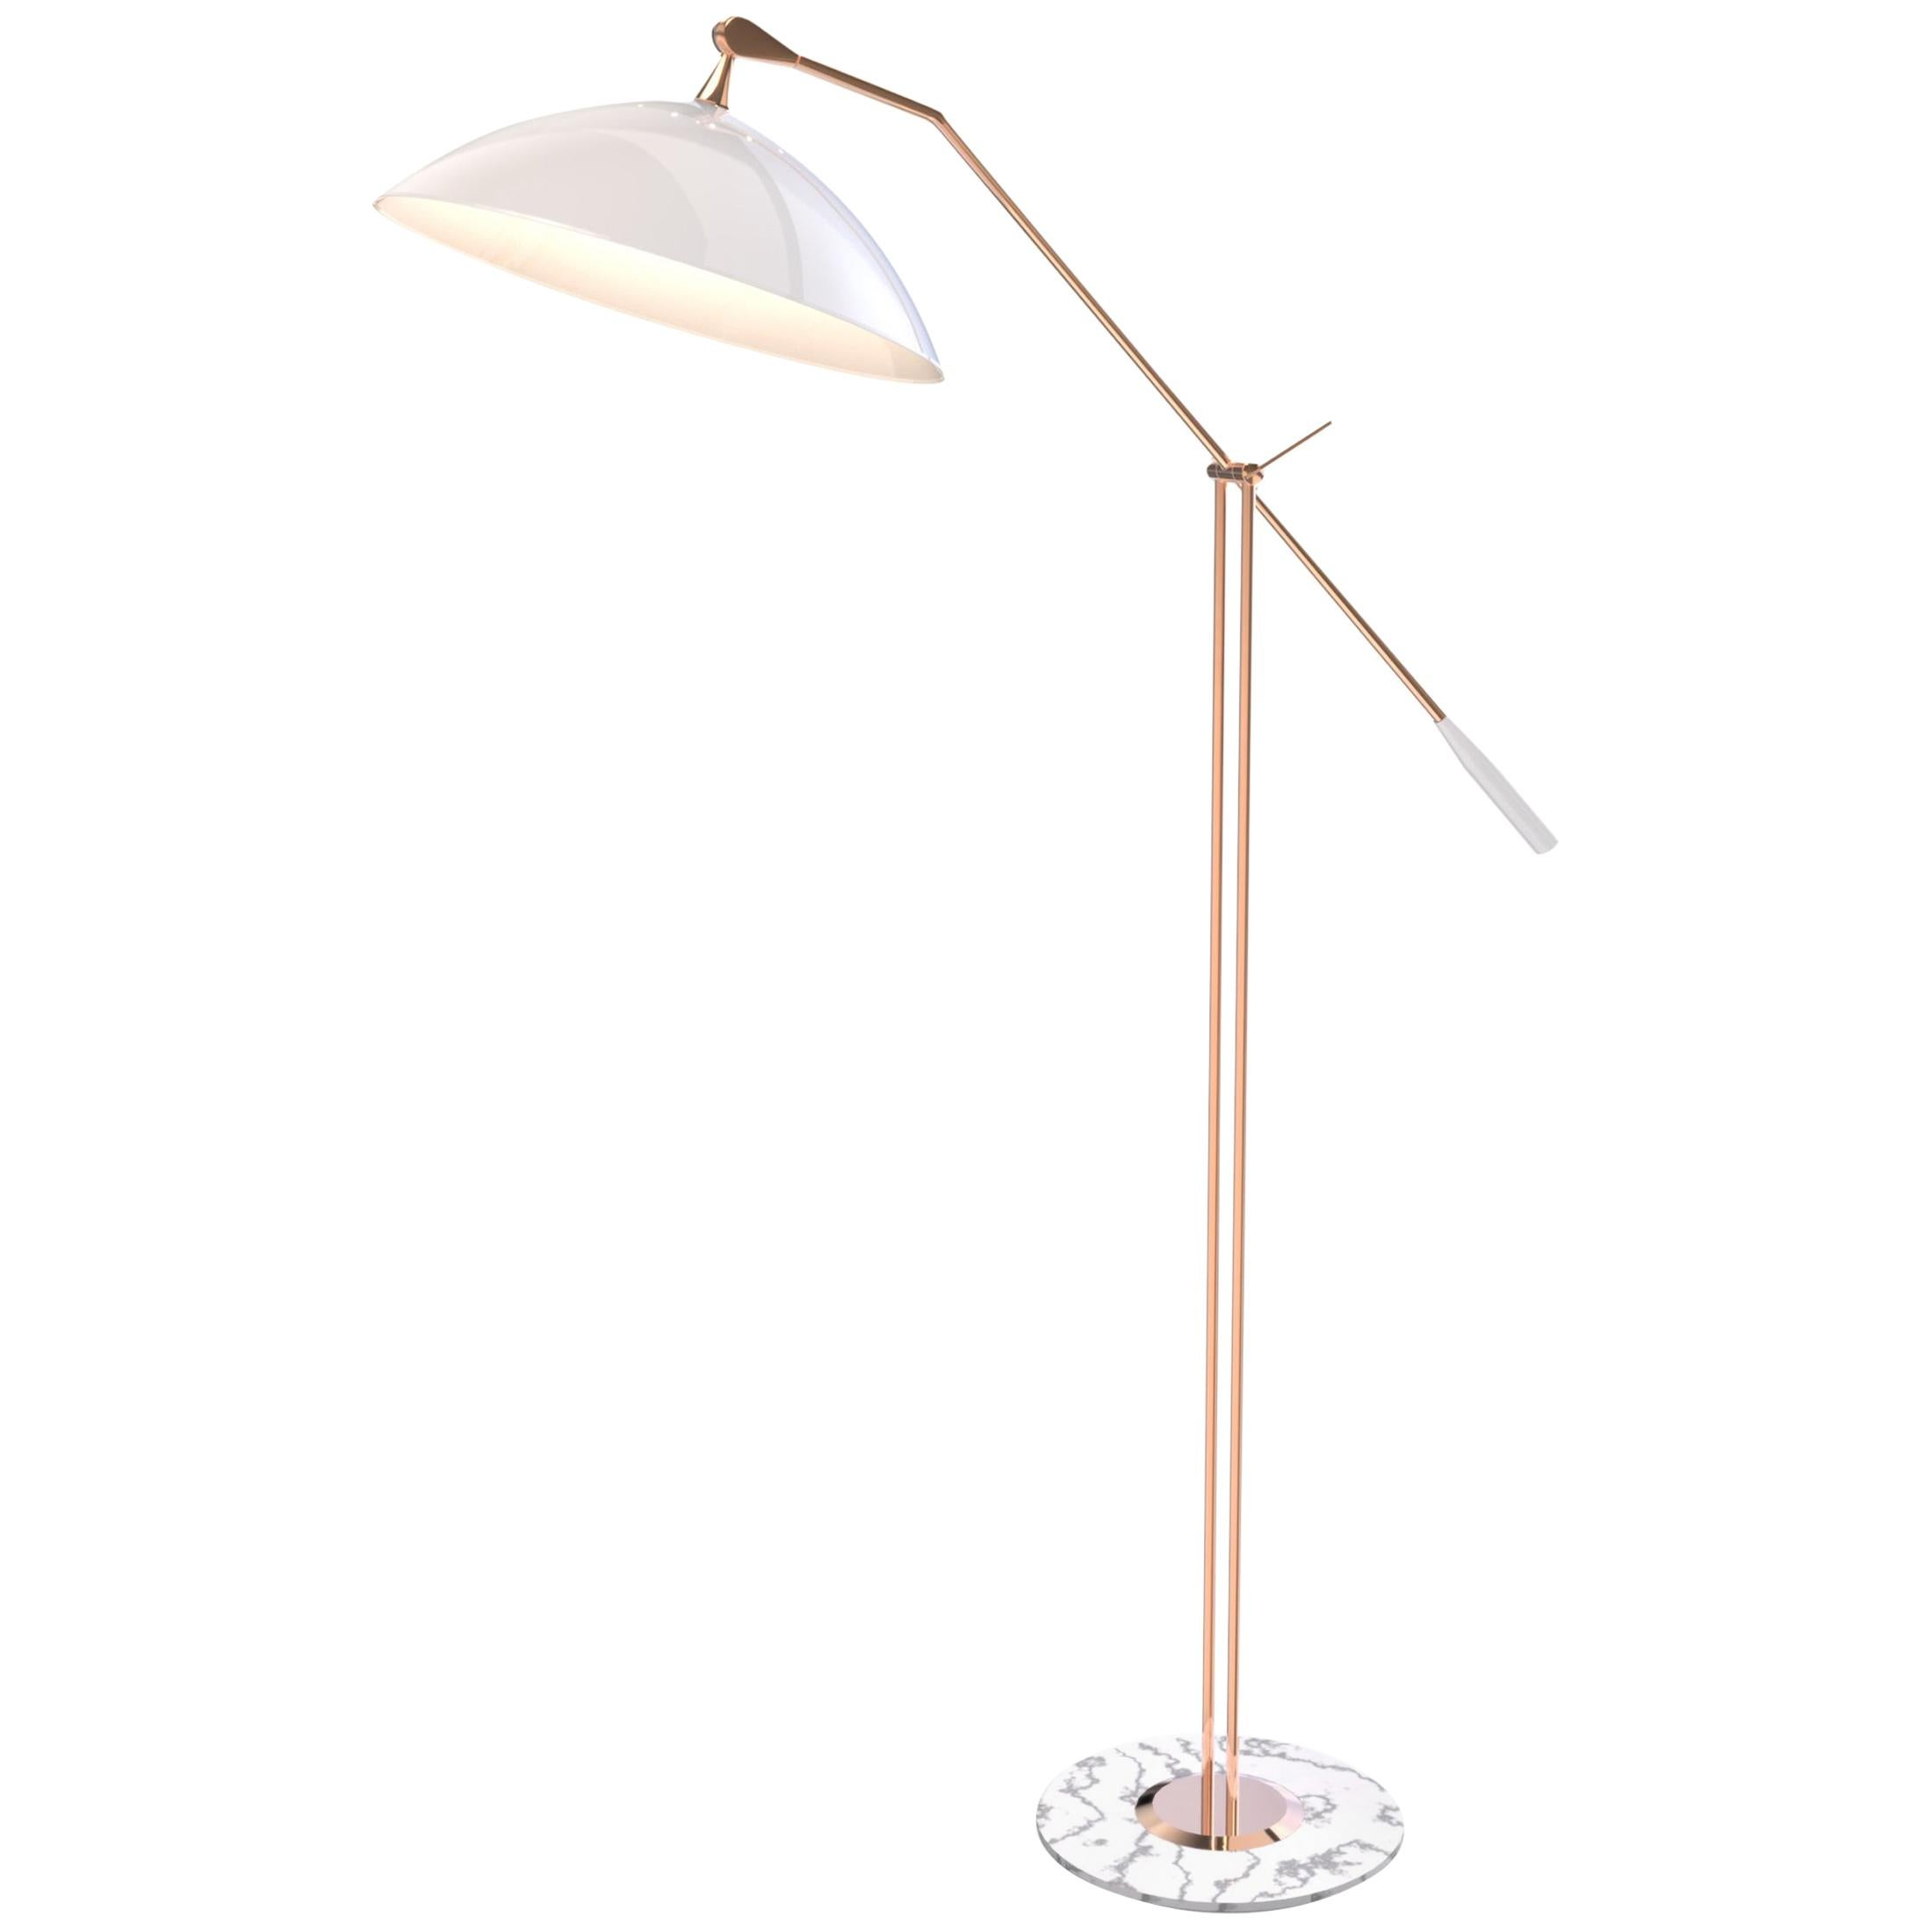 Armstrong Floor Lamp in Copper with White Shade